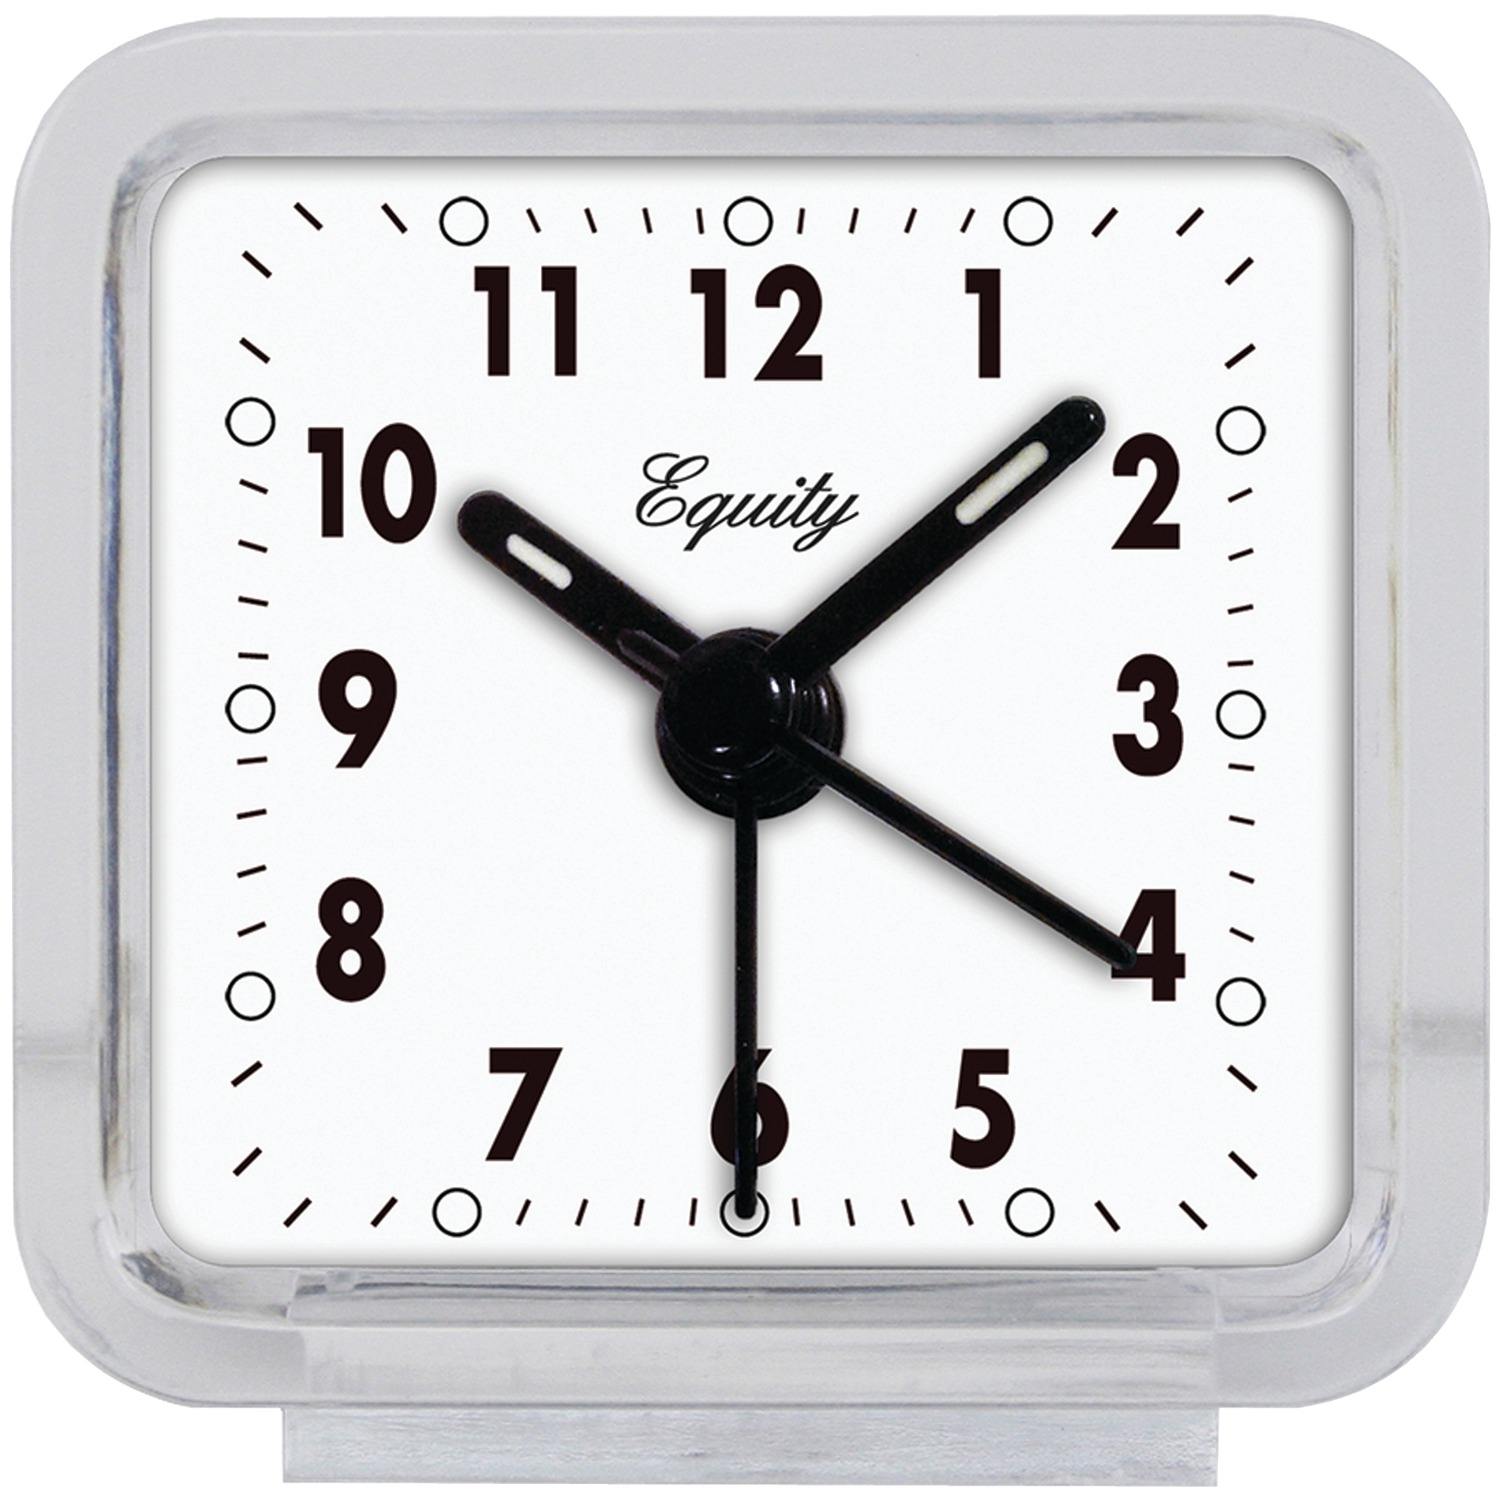 Equity by La Crosse 21038 Clear Quartz Alarm Clock